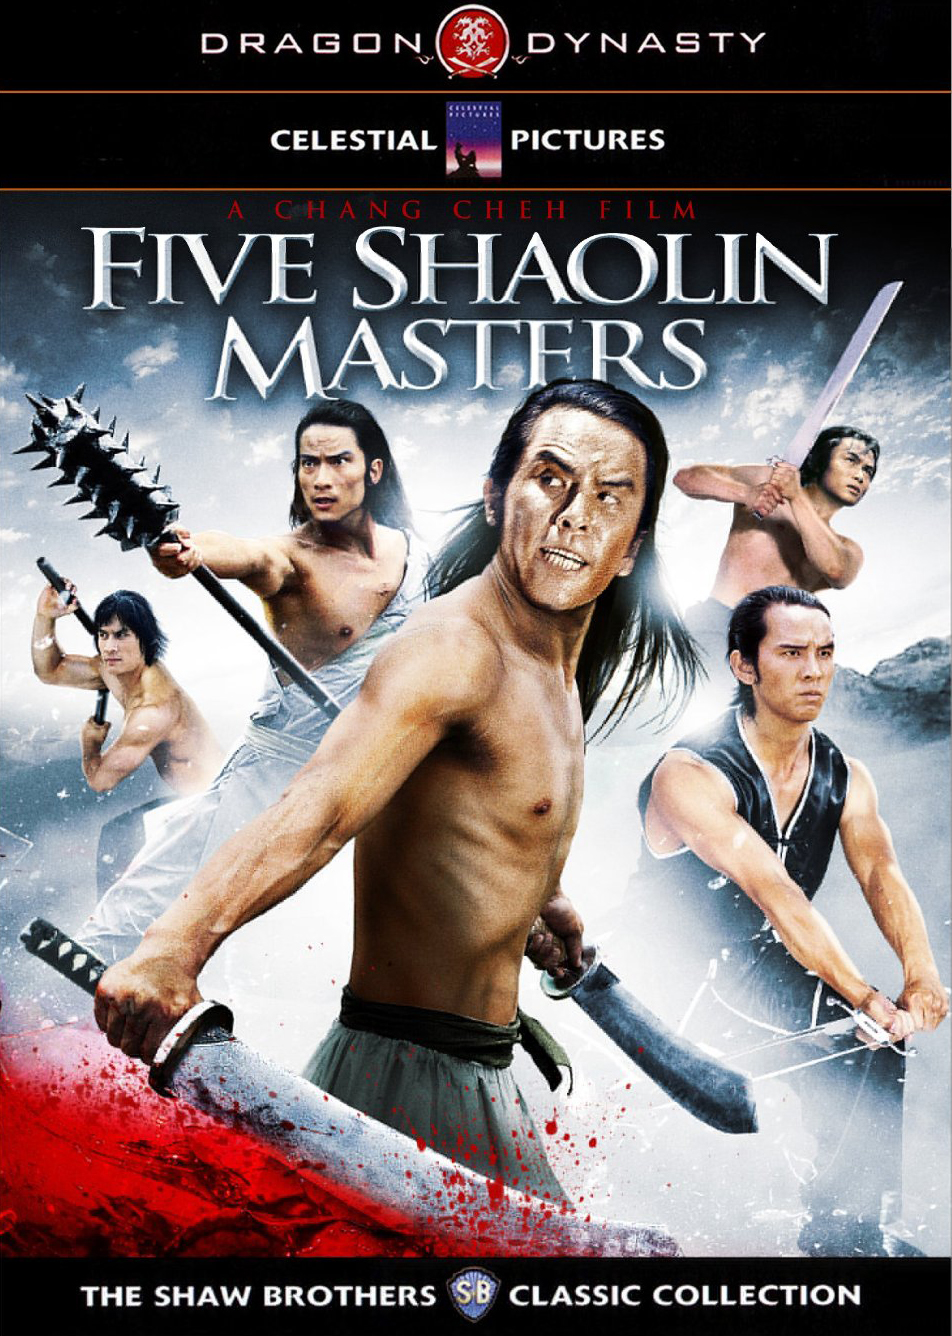 Warrior From Shaolin Movie HD free download 720p